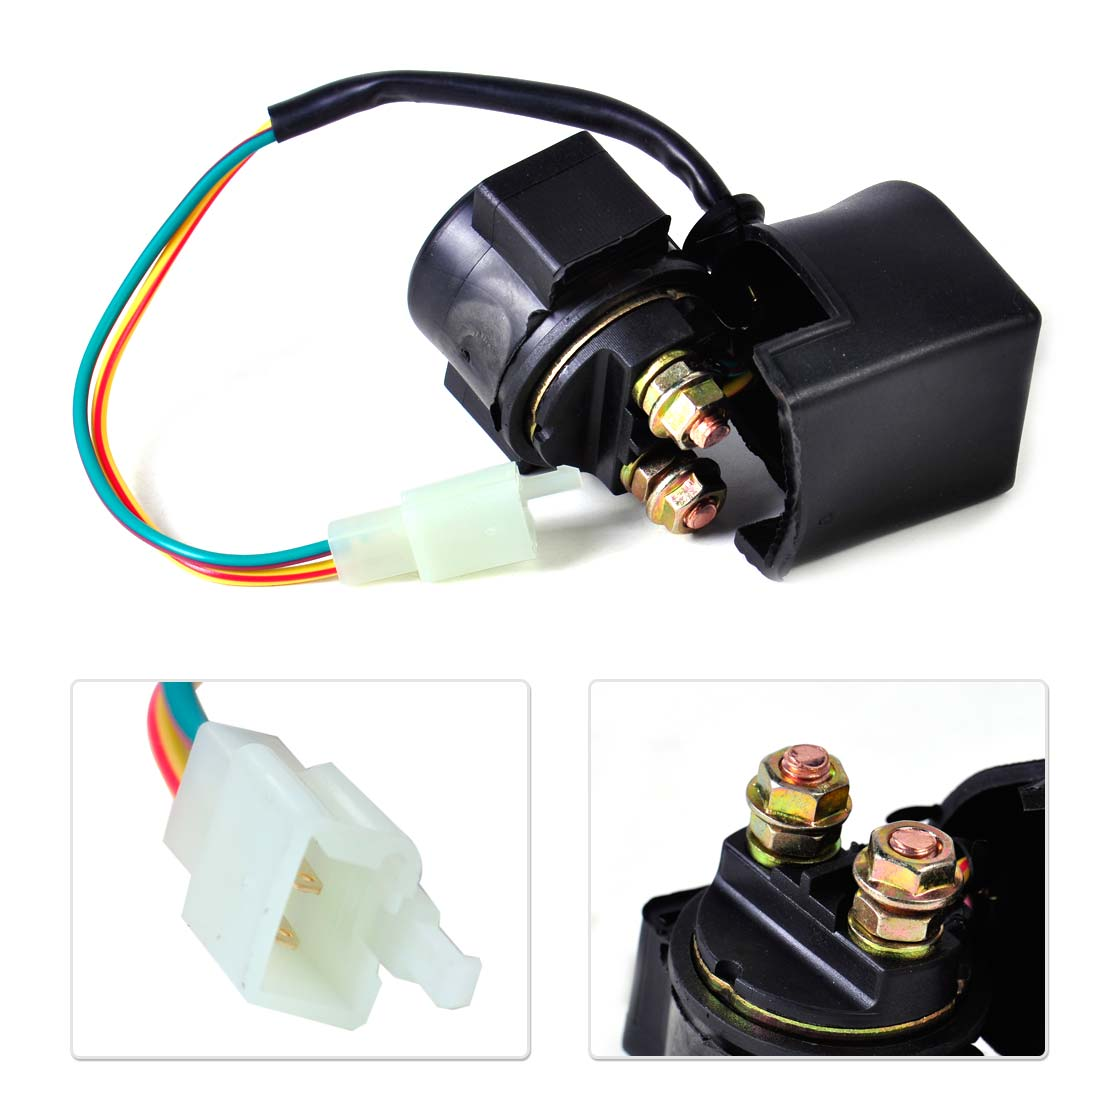 DWCX New Starter Solenoid Relay for ATV Scooter 70cc 150 250cc XS360